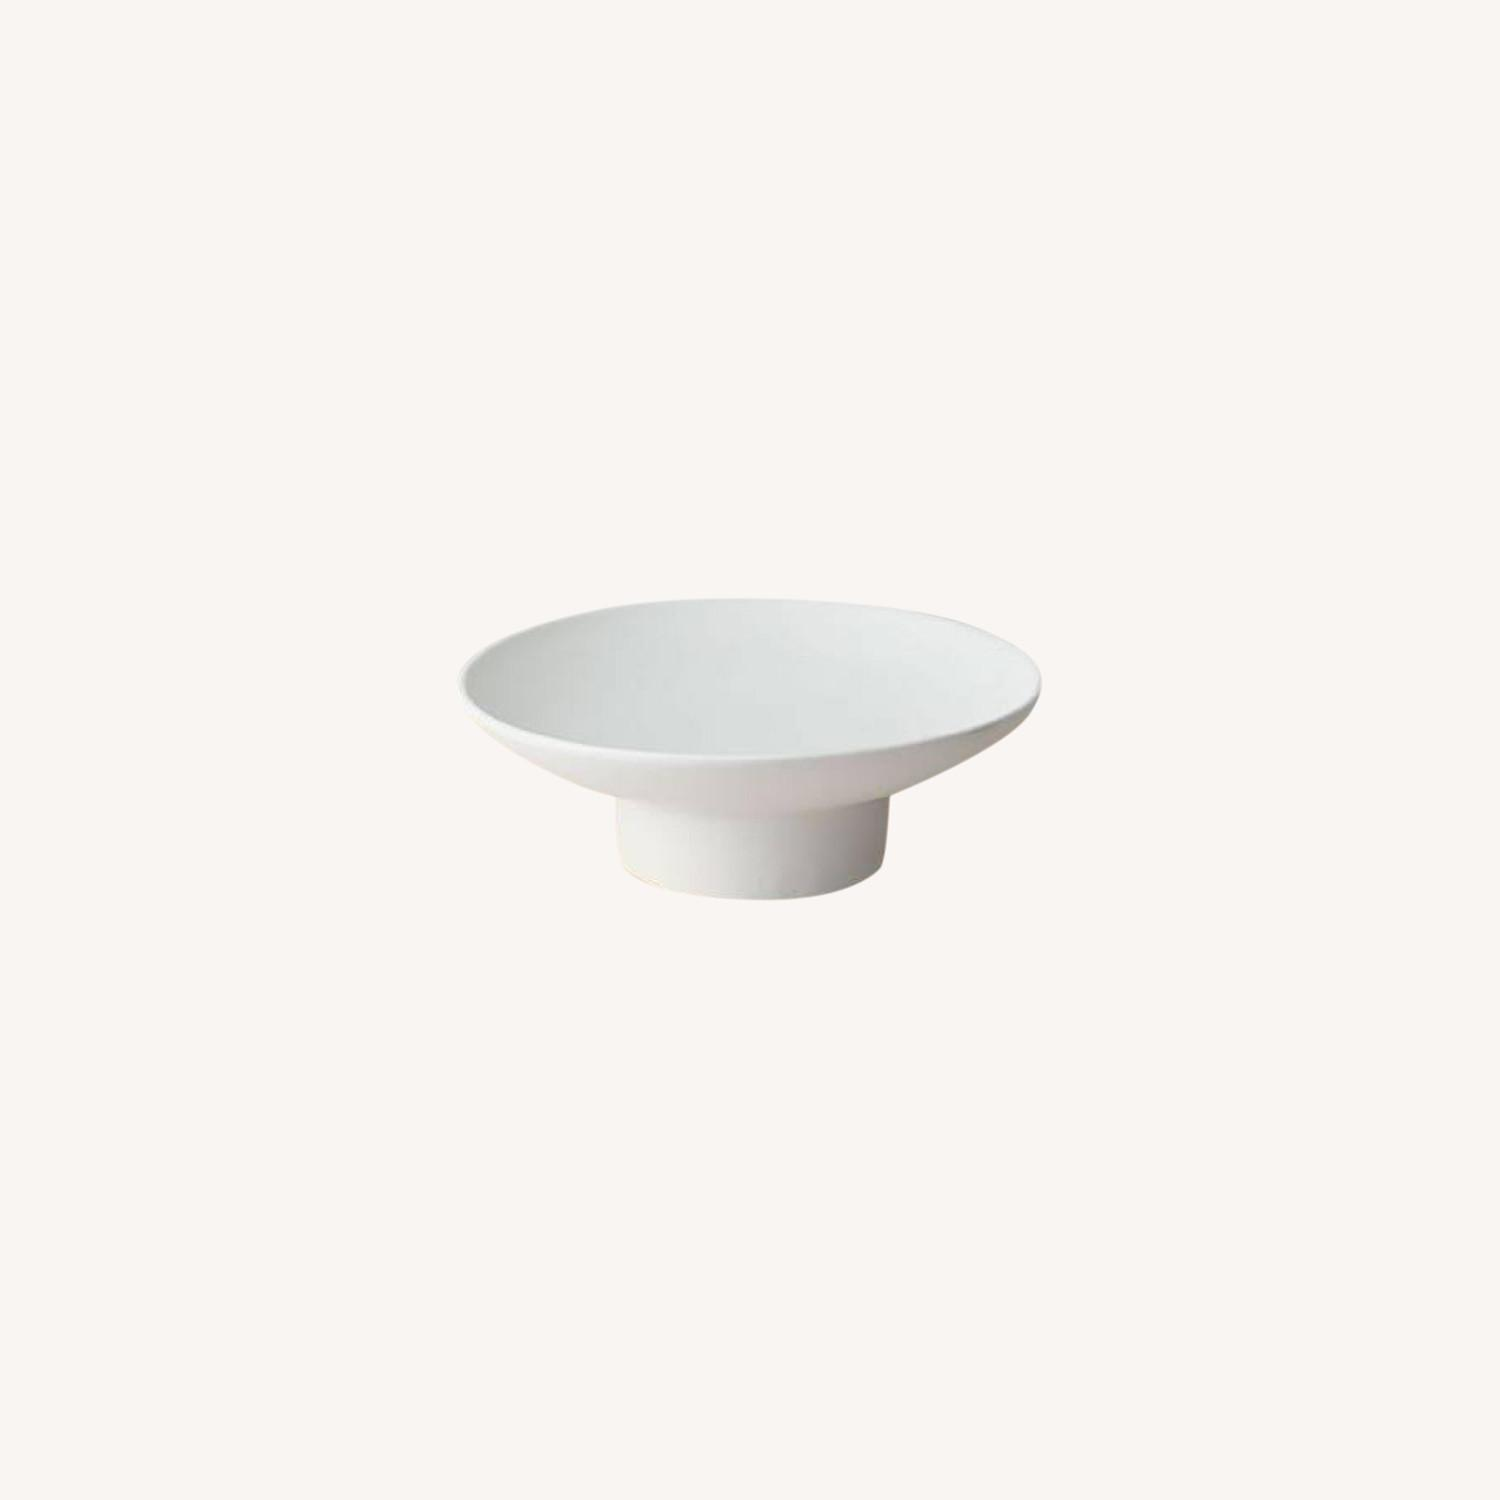 West Elm Natural White Ceramic Footed Centerpiece Bowl - image-0